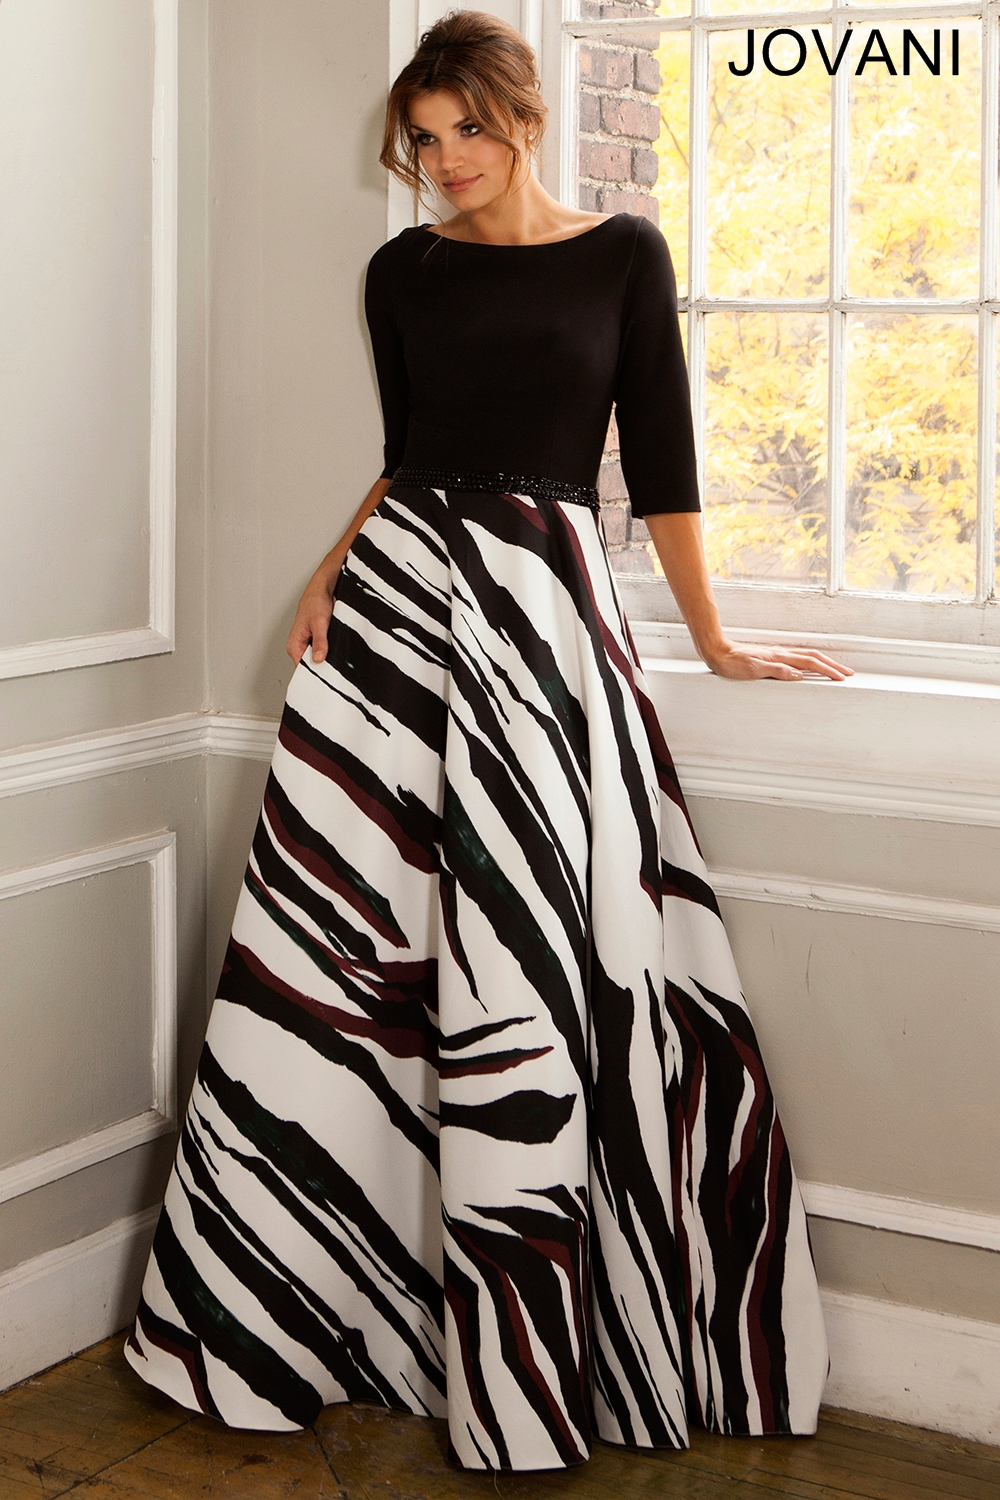 Jovani 21858 Evening Dress Zebra Print Skirt